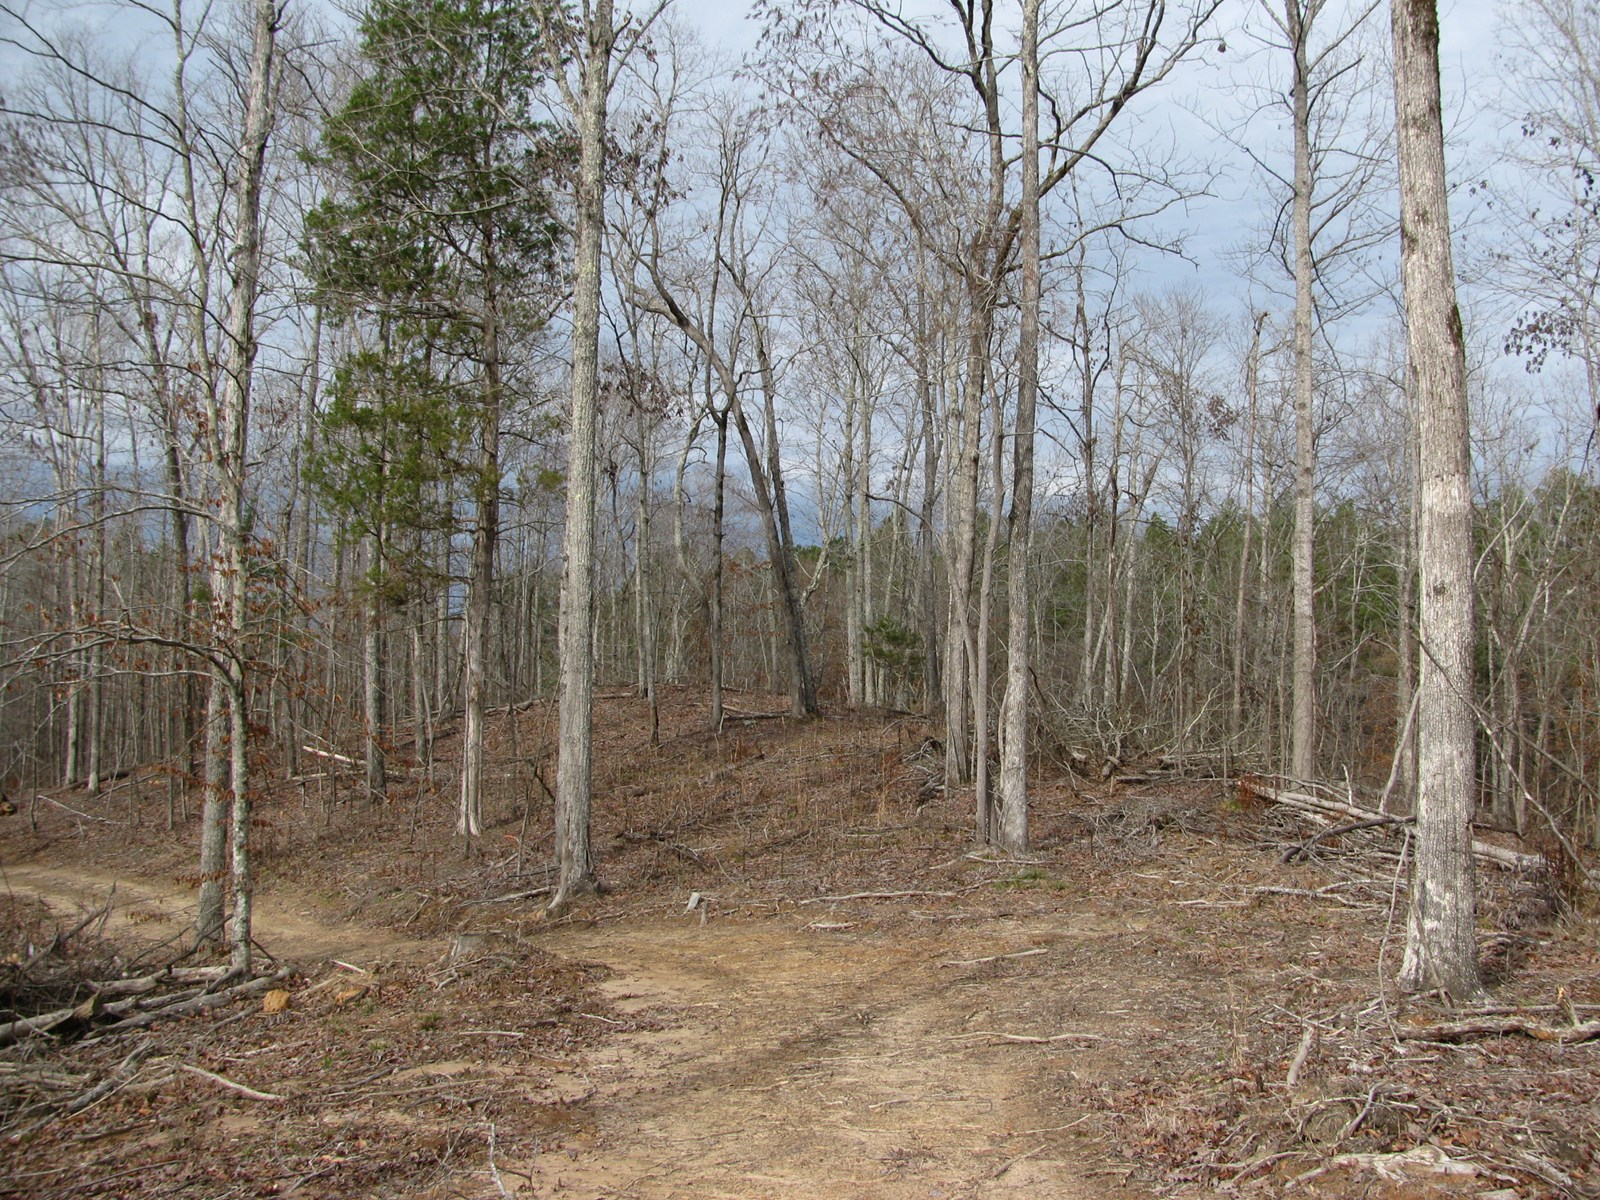 LAND IN TN FOR SALE WITH CREEK, HUNTING, OWNER FINANCING